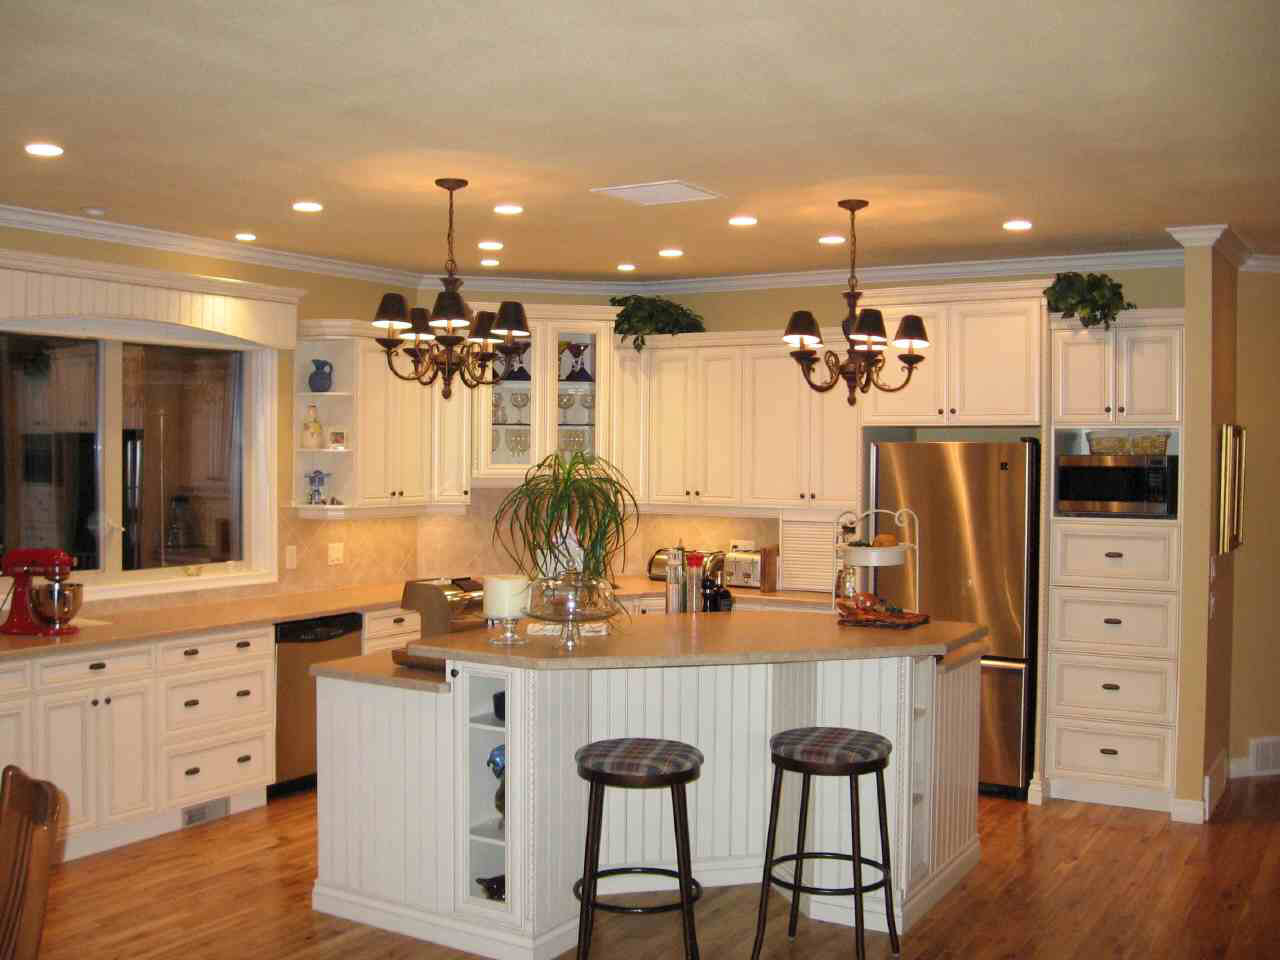 Fabulous White Small Kitchen Design Ideas 1280 x 960 · 109 kB · jpeg